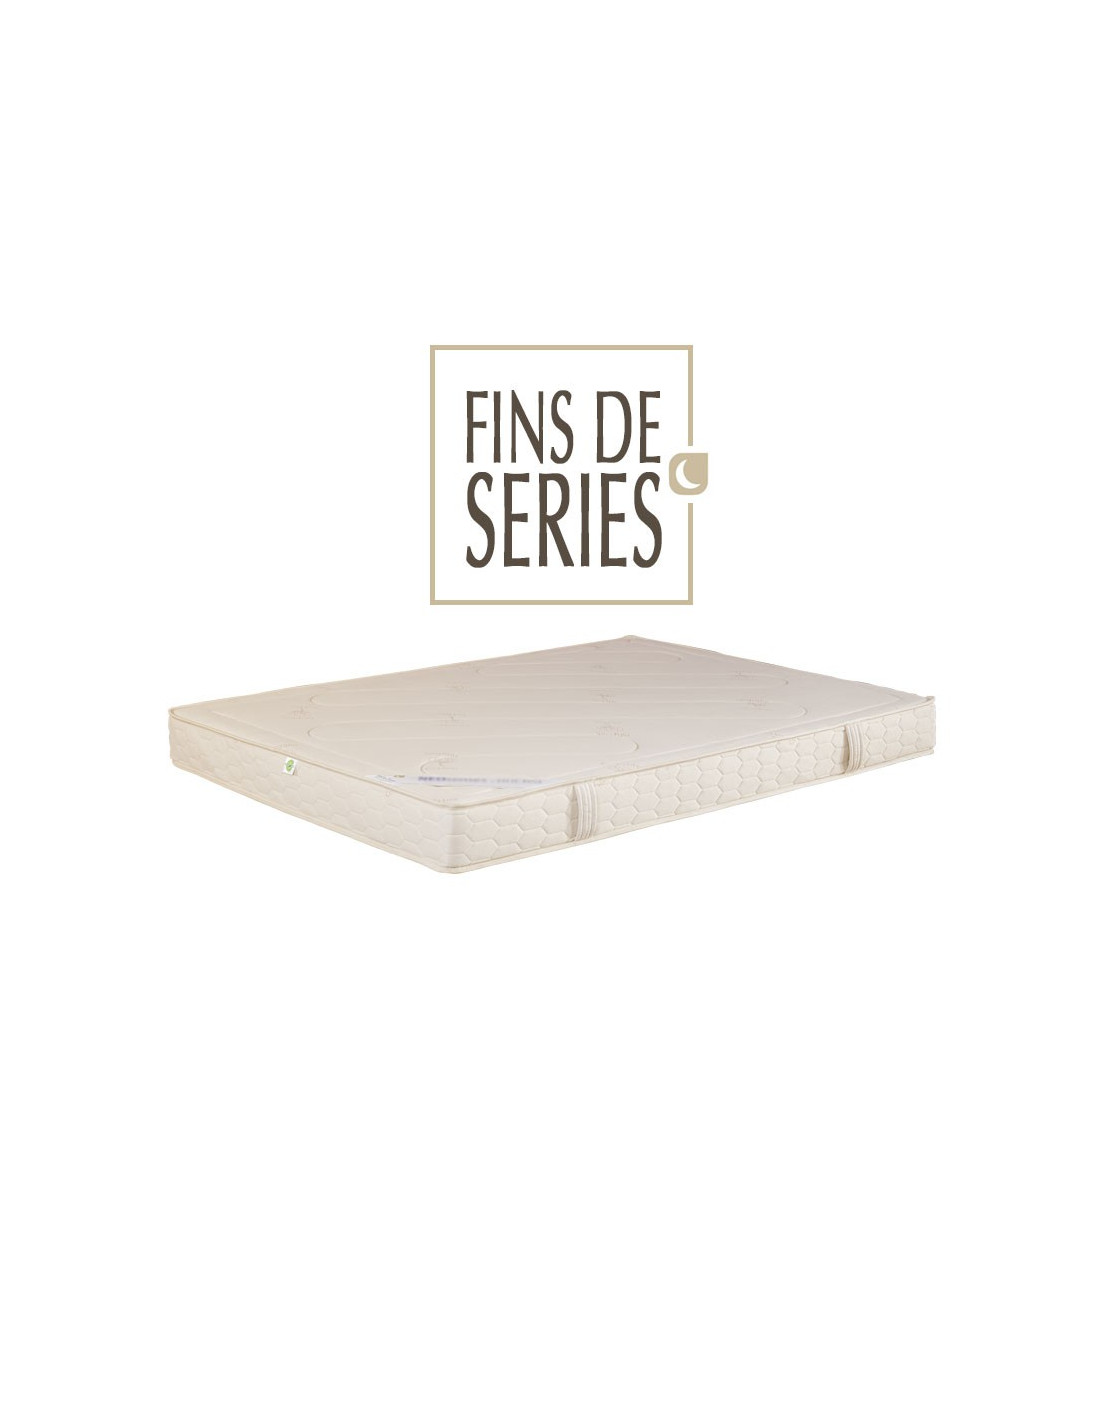 matelas fin de serie maison design. Black Bedroom Furniture Sets. Home Design Ideas